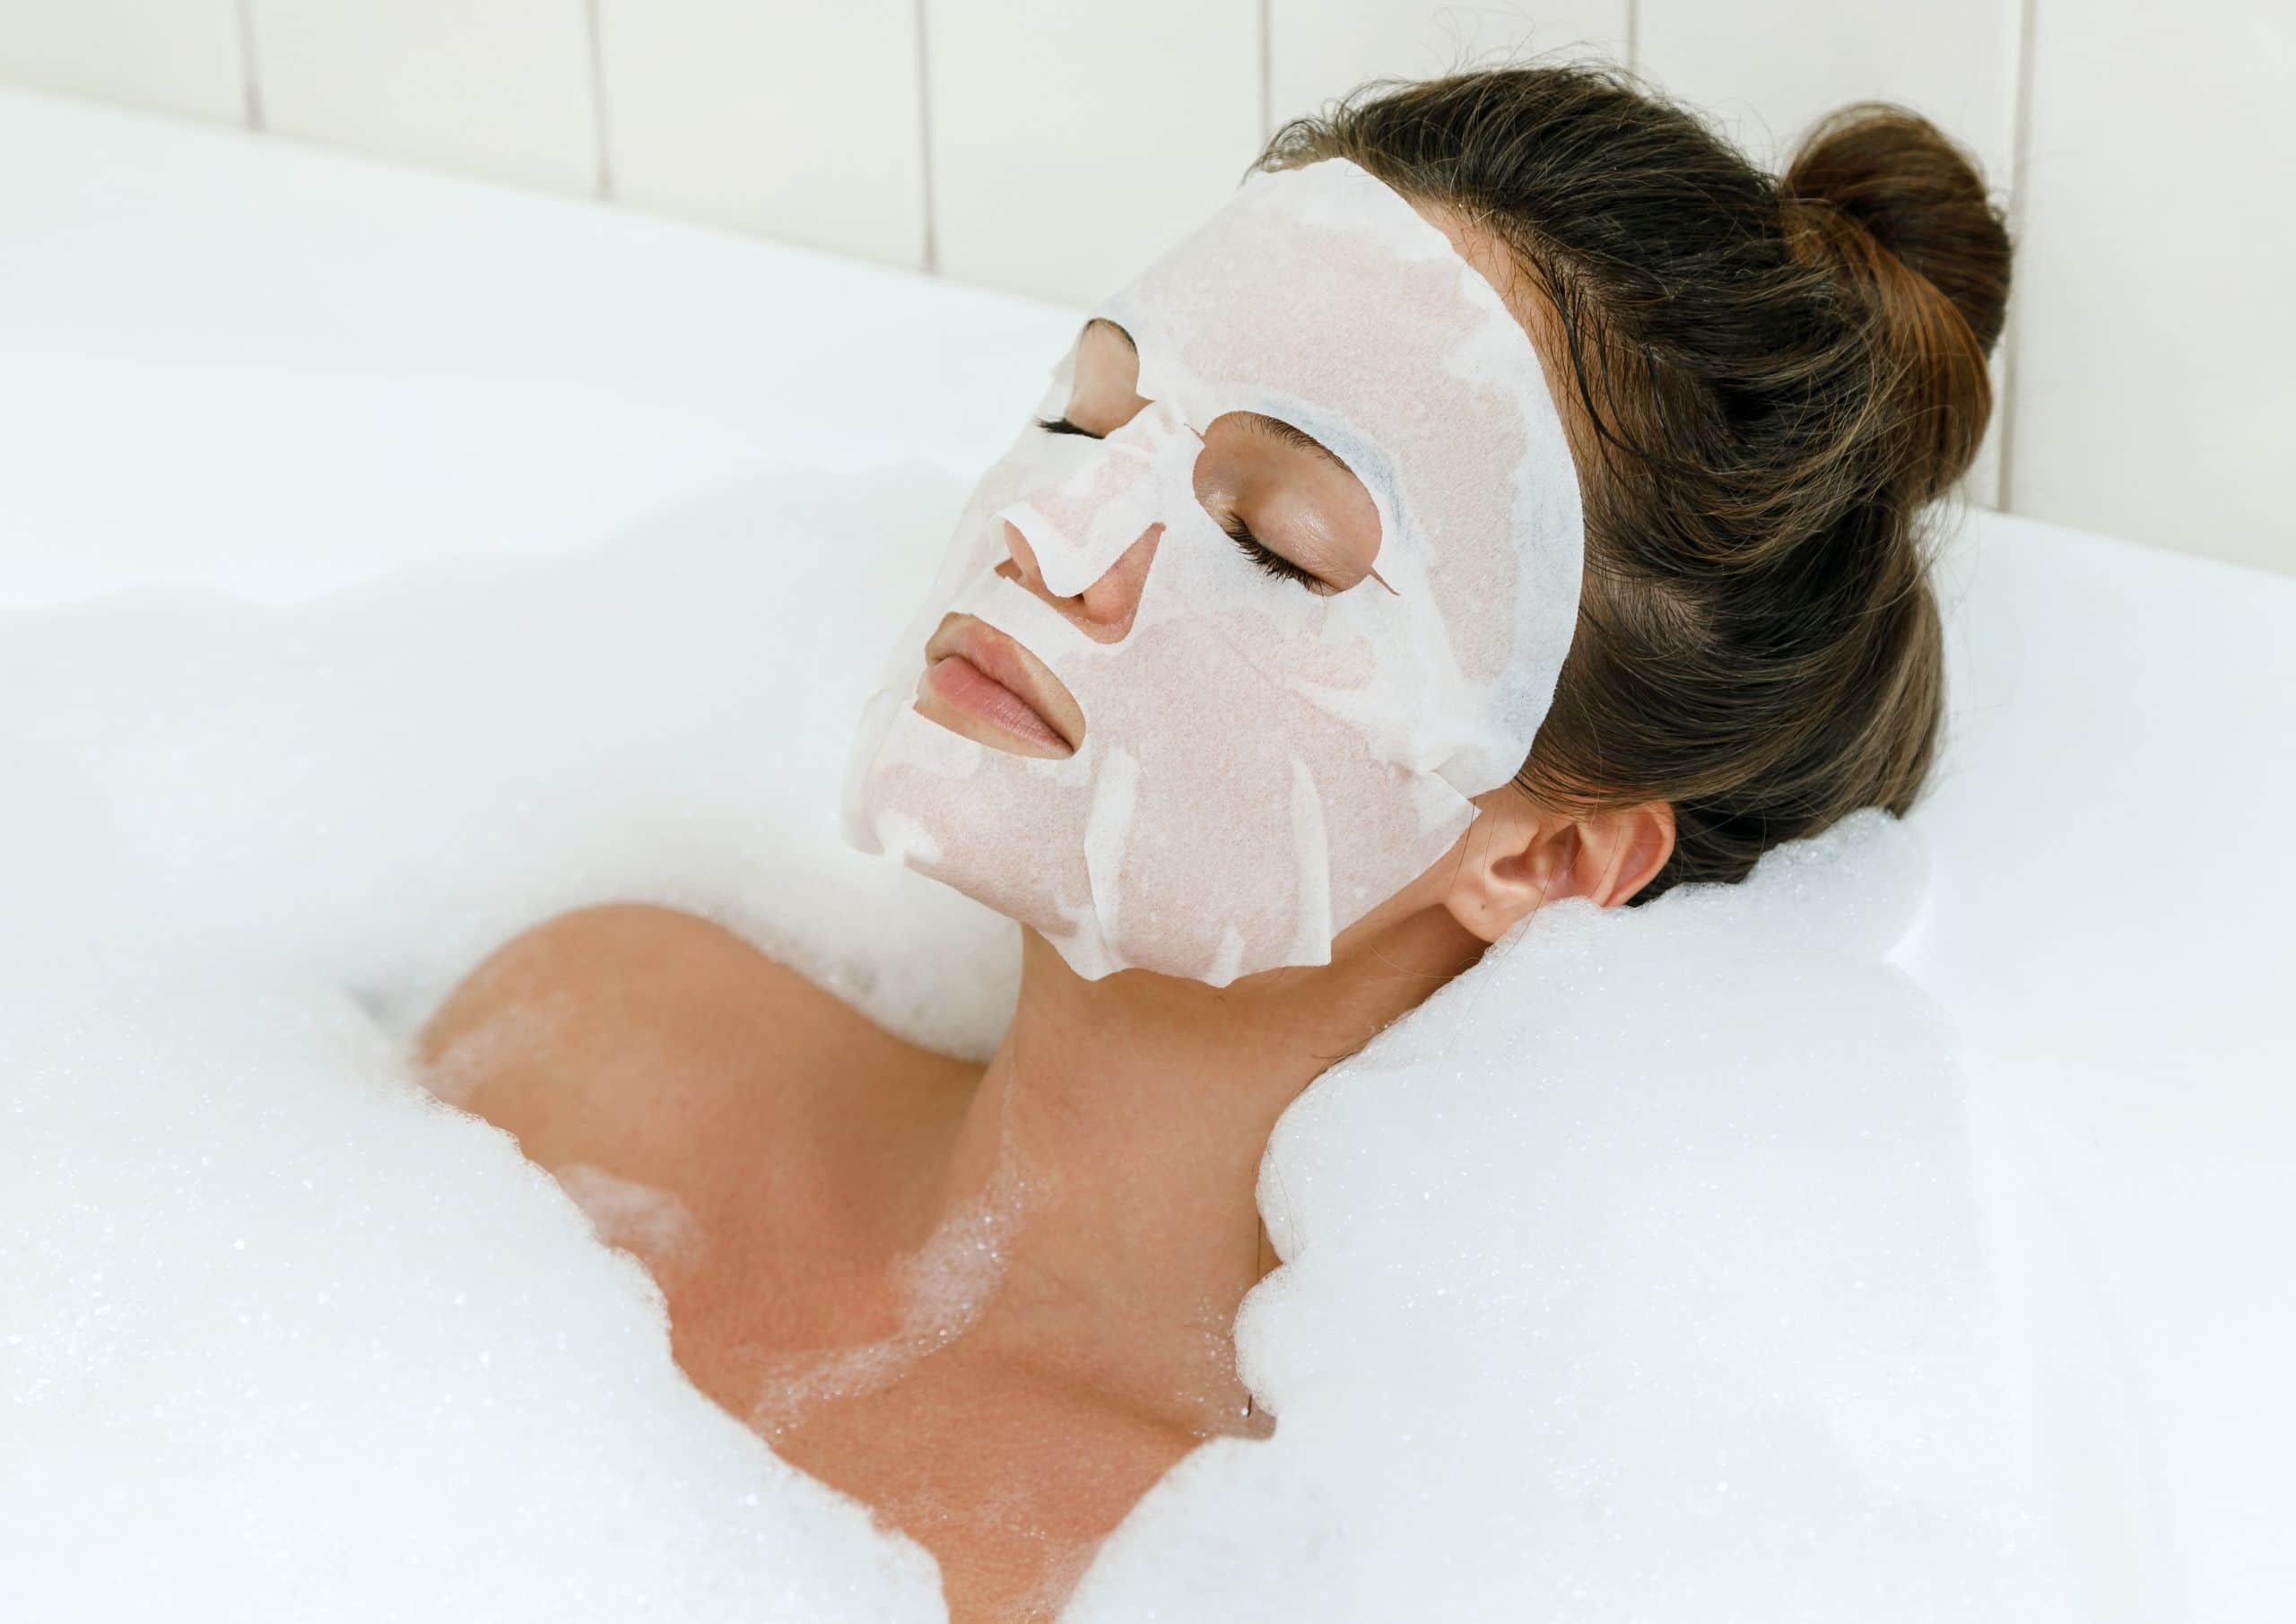 What are the skincare benefits of face masks